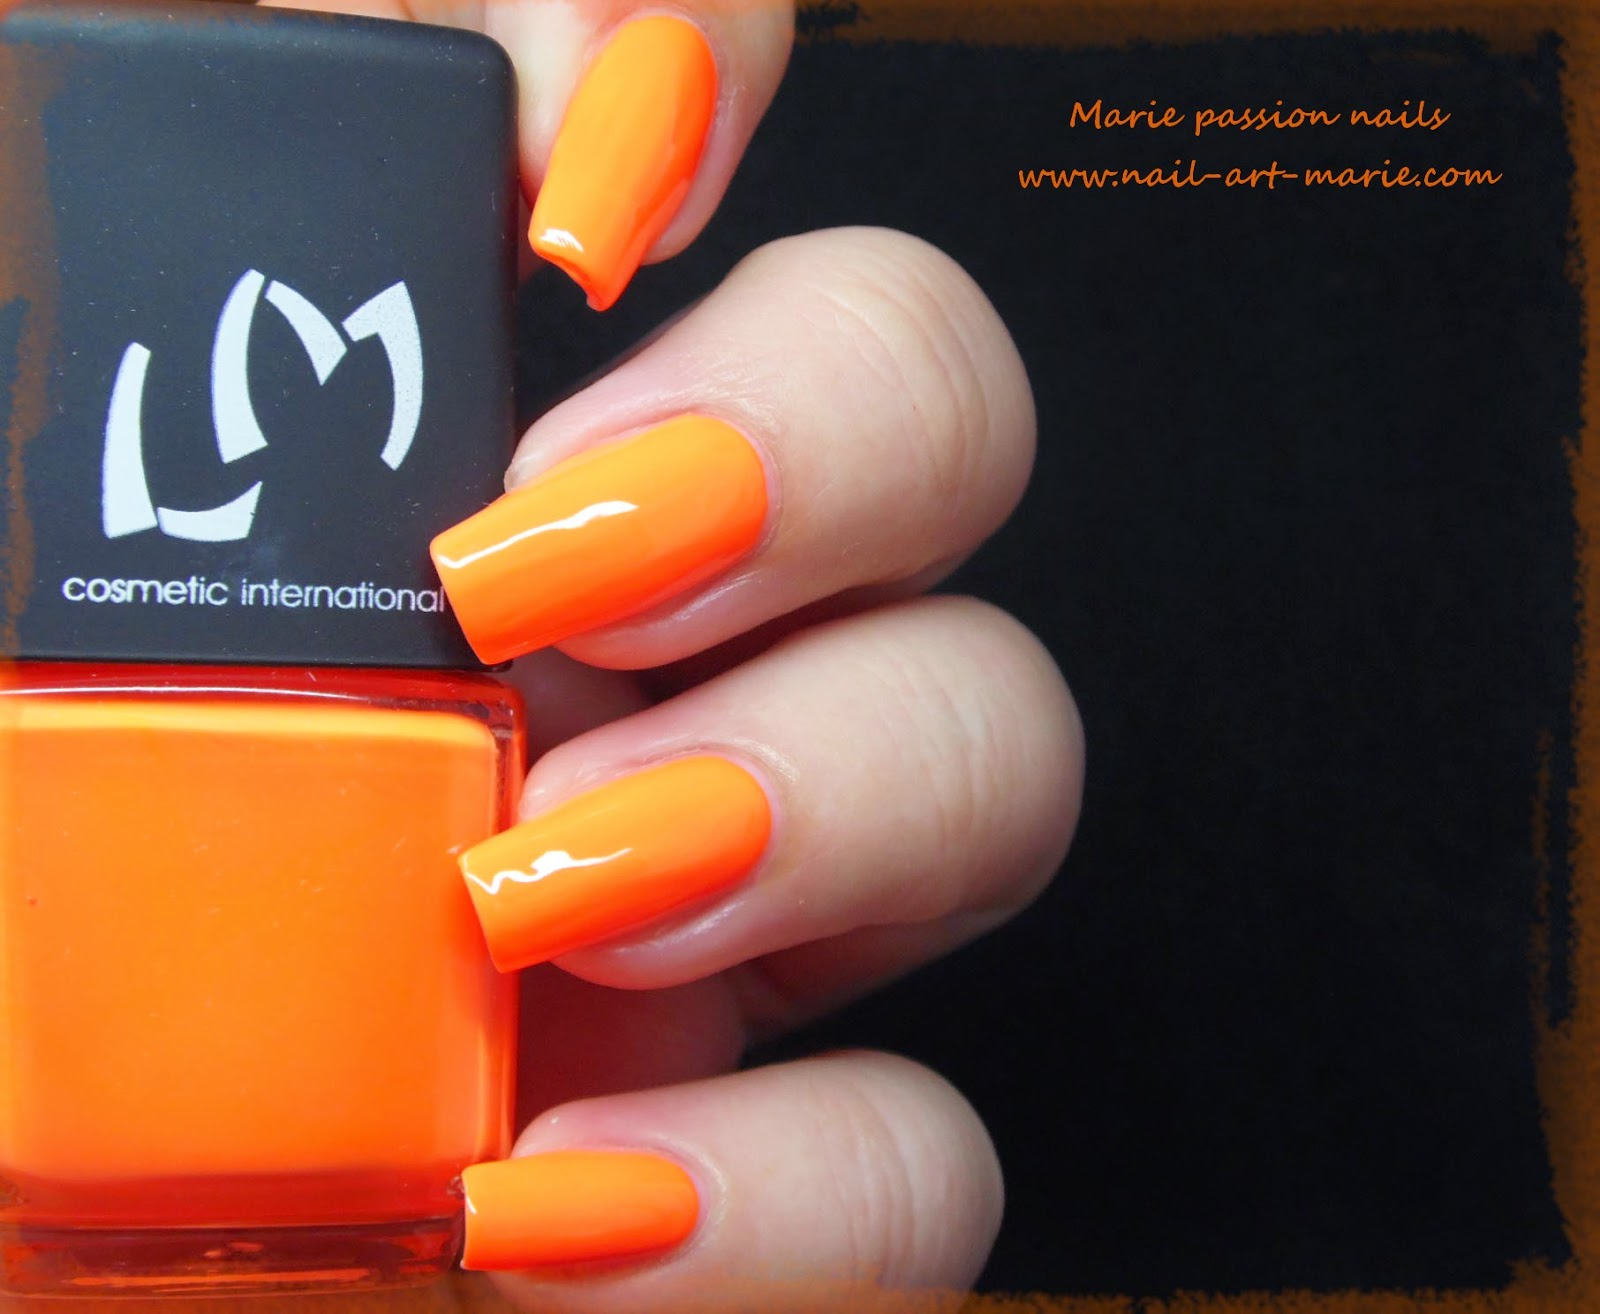 LM Cosmetic Peter Max3